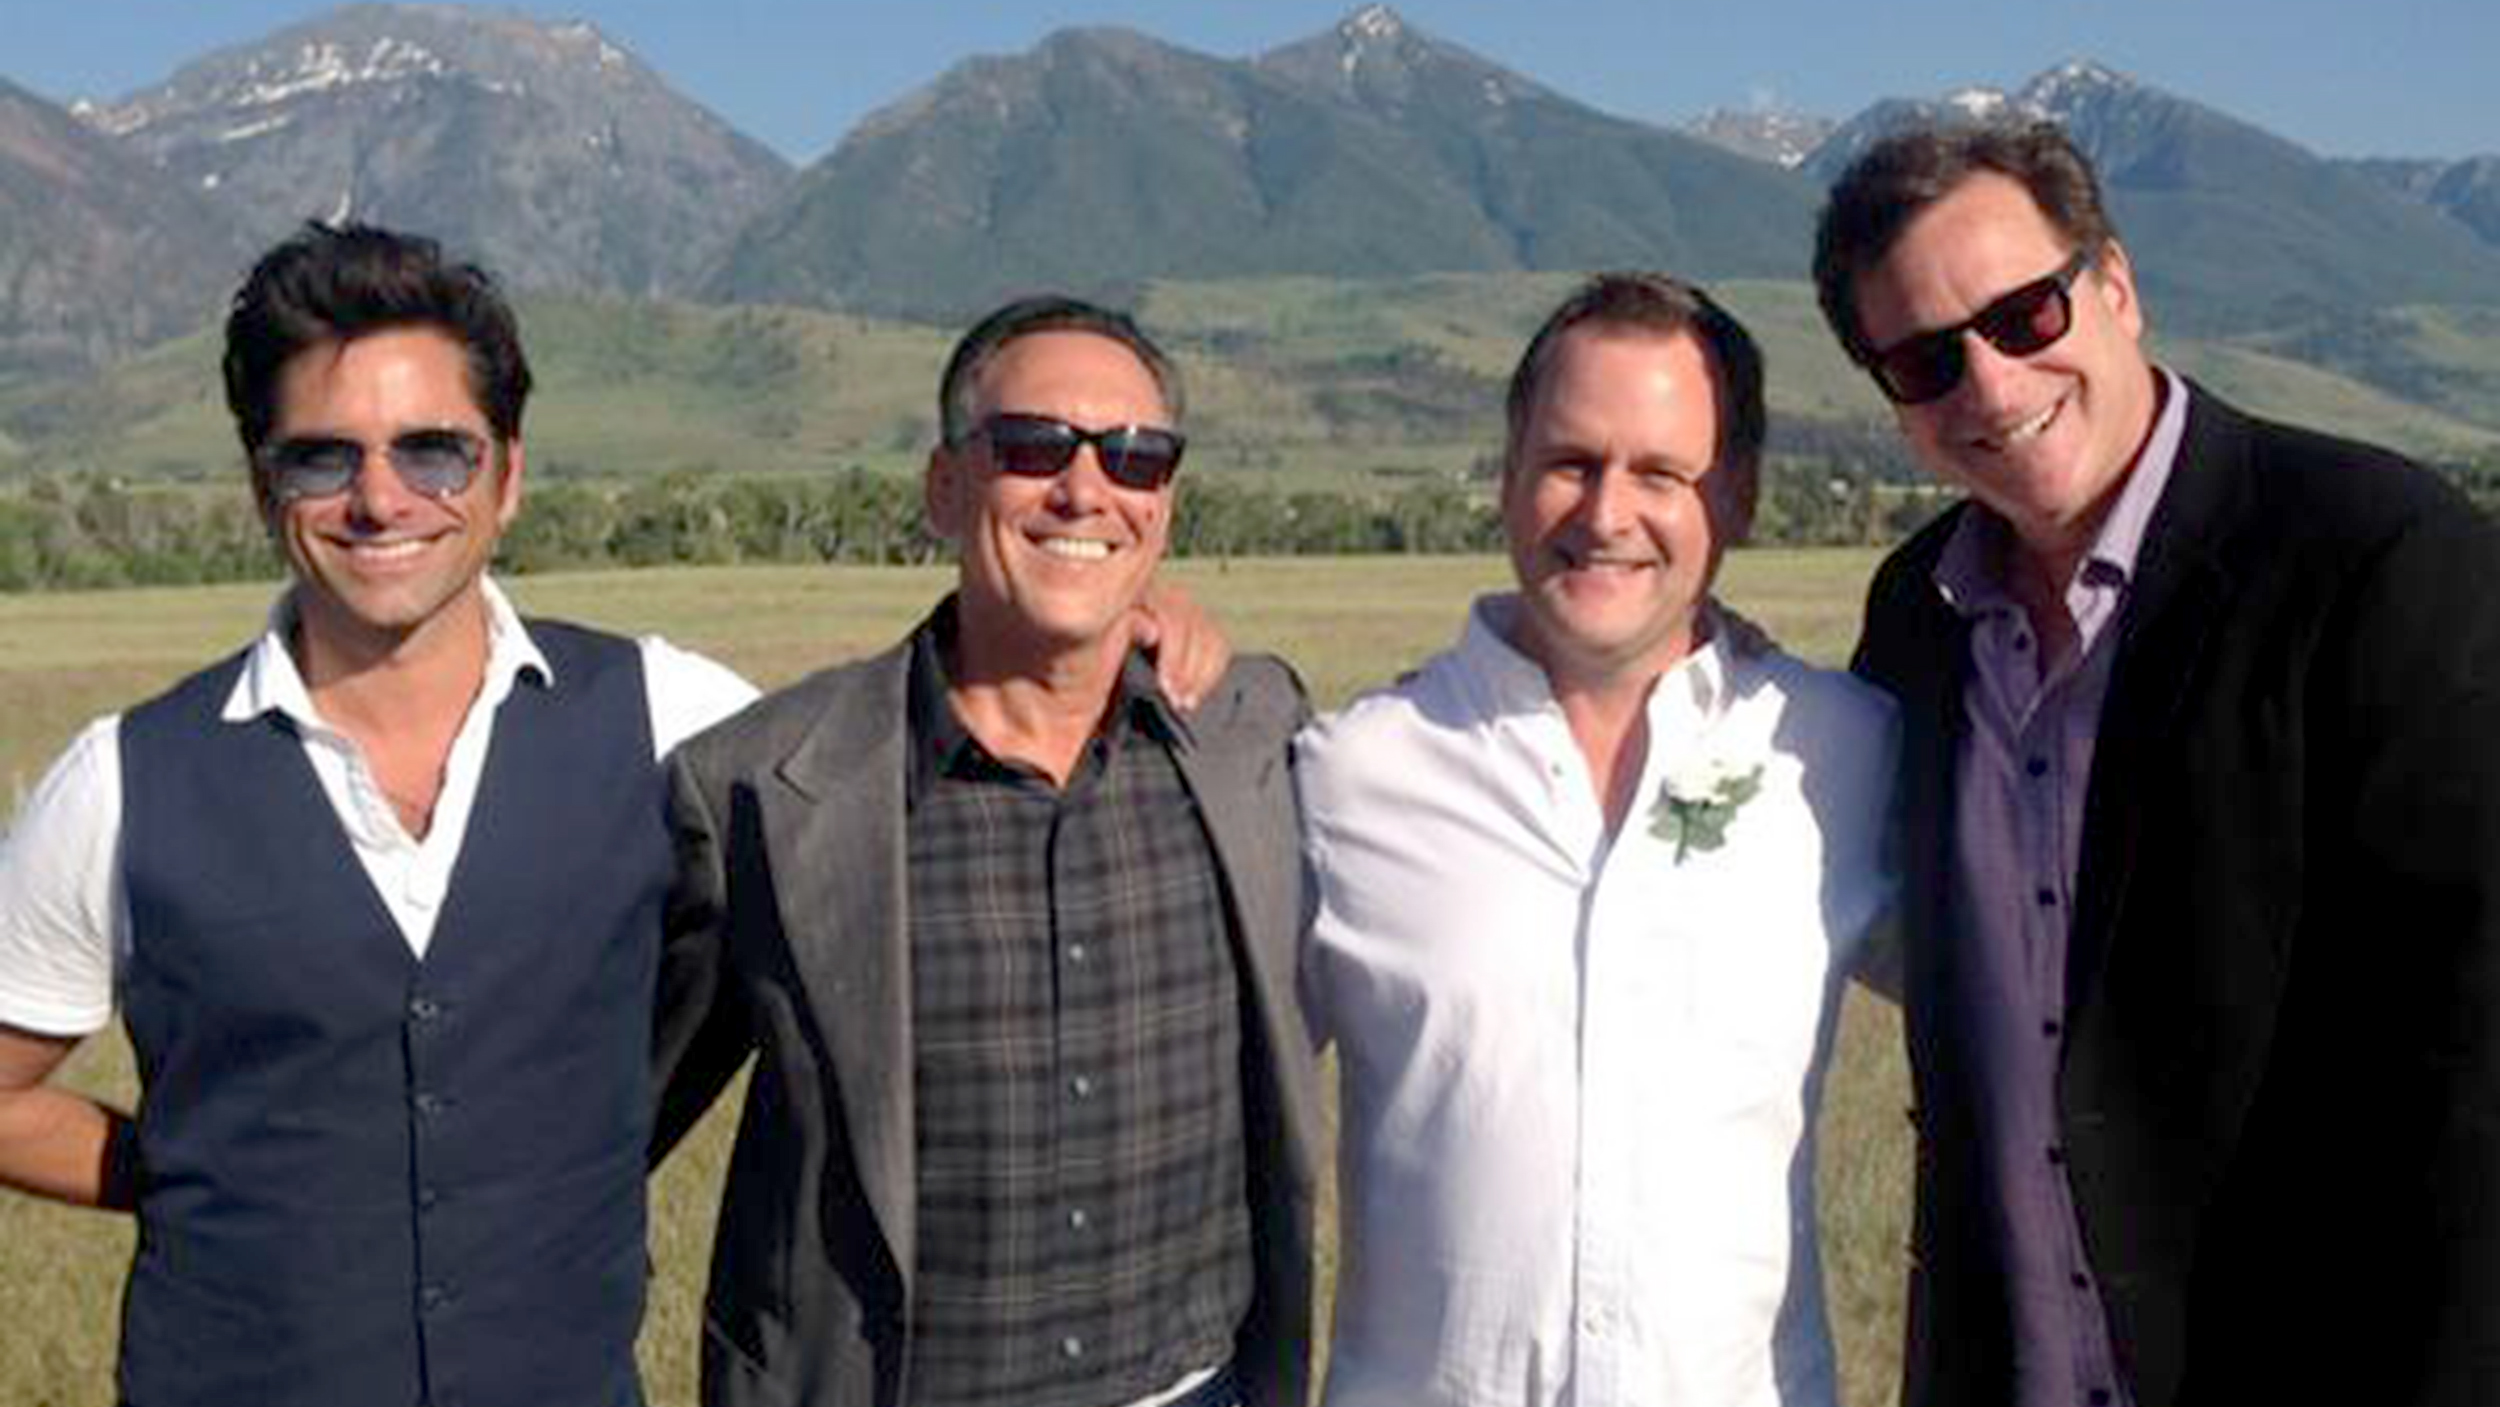 Dave Couliers wedding turns into Full House reunion TODAY